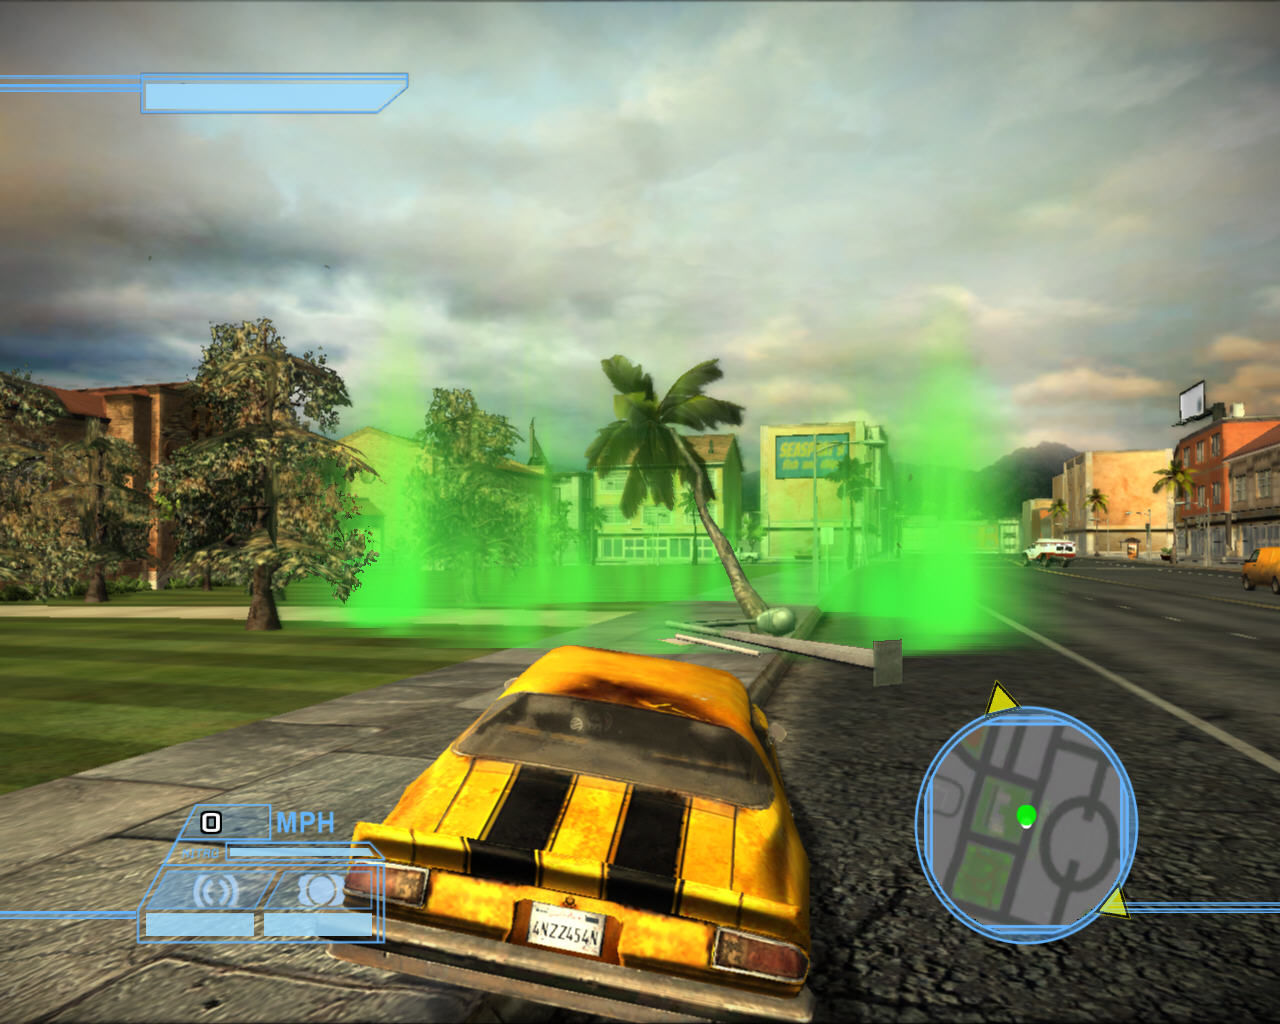 Transformers: The Game Windows Enter green area and mission will begin